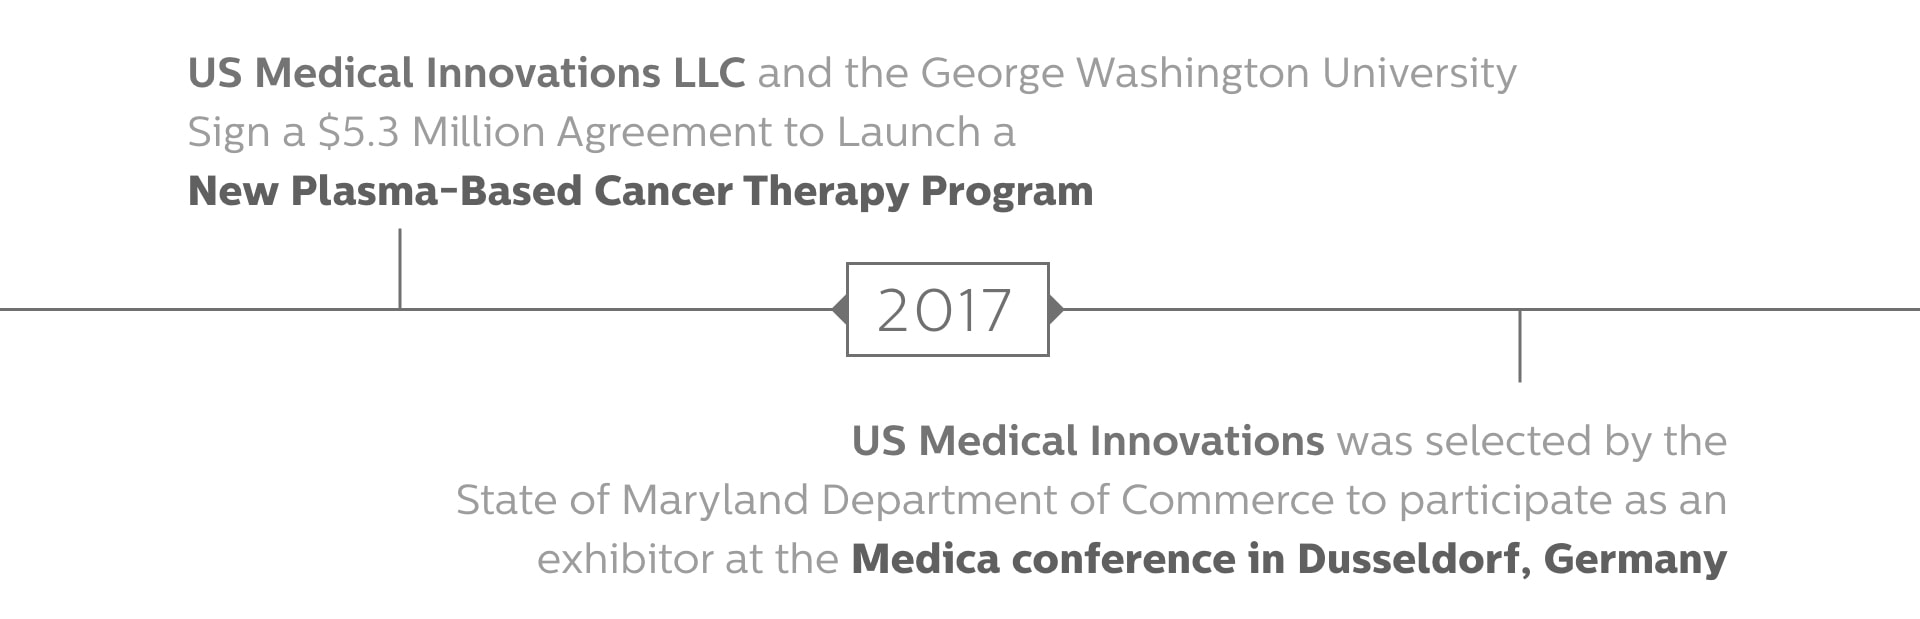 New Plasma-based cancer therapy program agreement with George Washington University